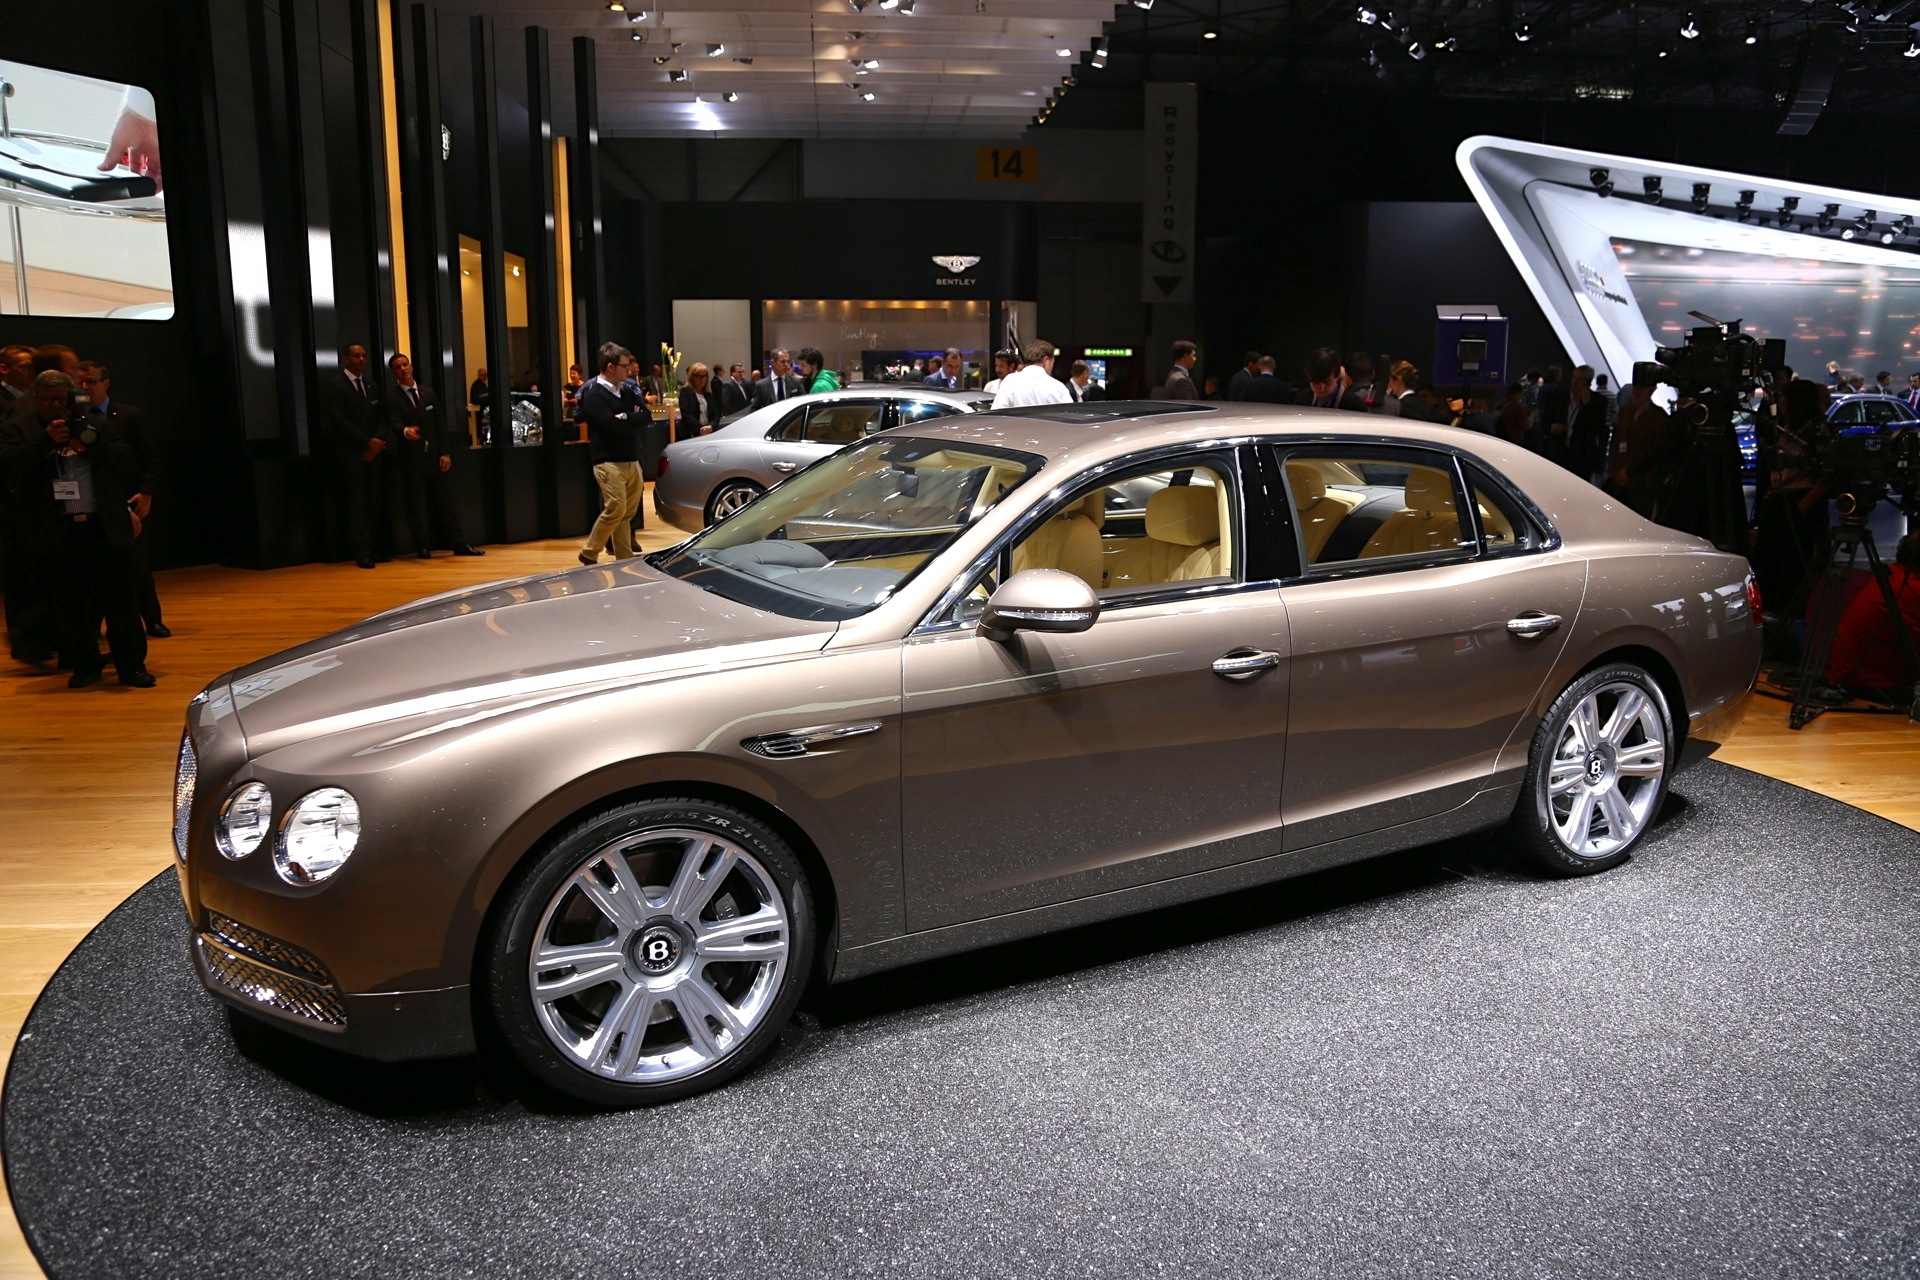 2014 Bentley Flying Spur Live From Geneva: Gallery